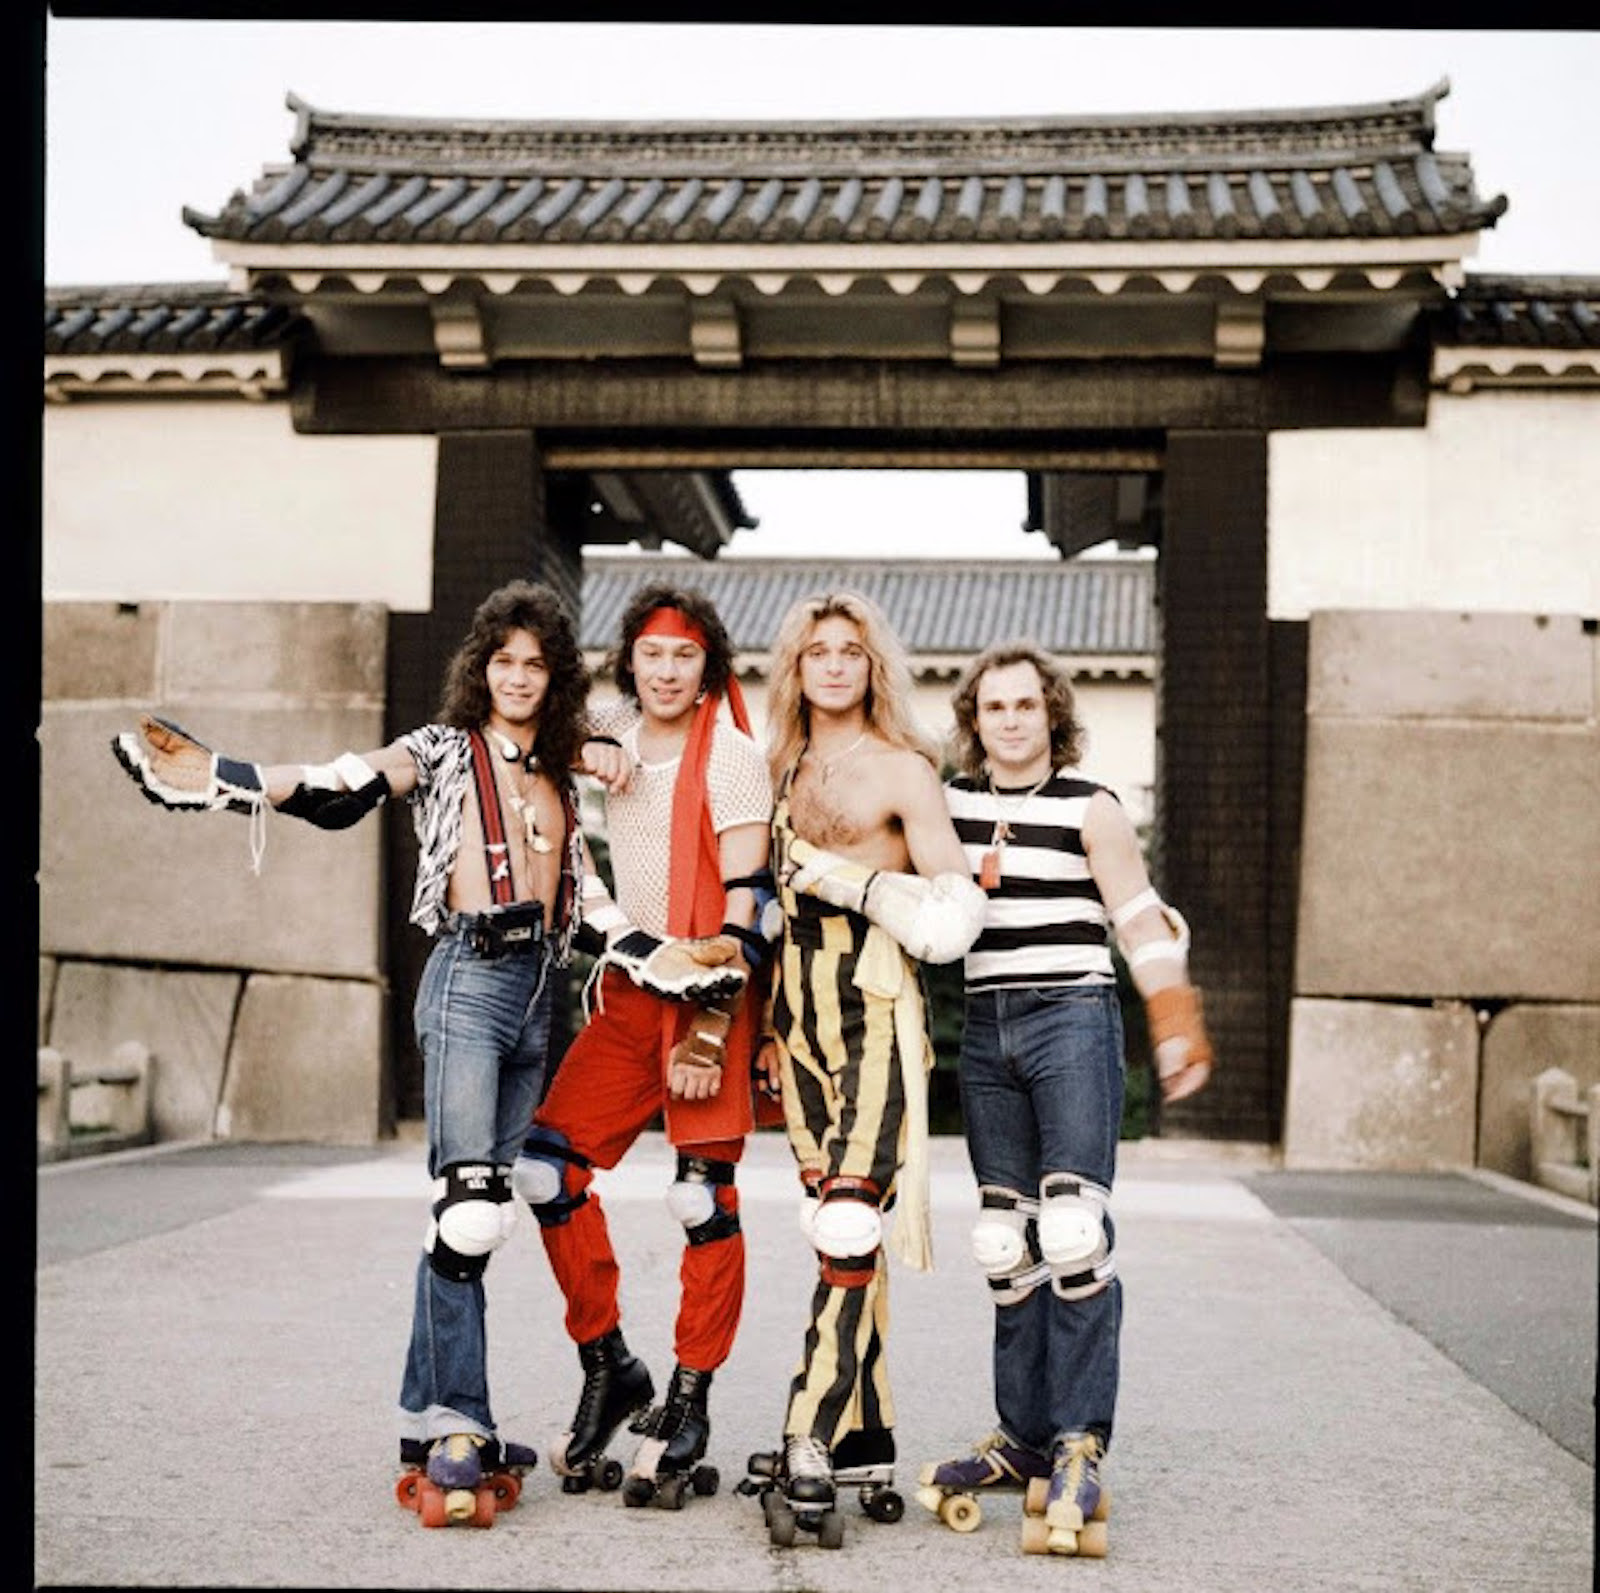 rock-stars-as-tourists-in-japan-1970s-80s-3.jpg